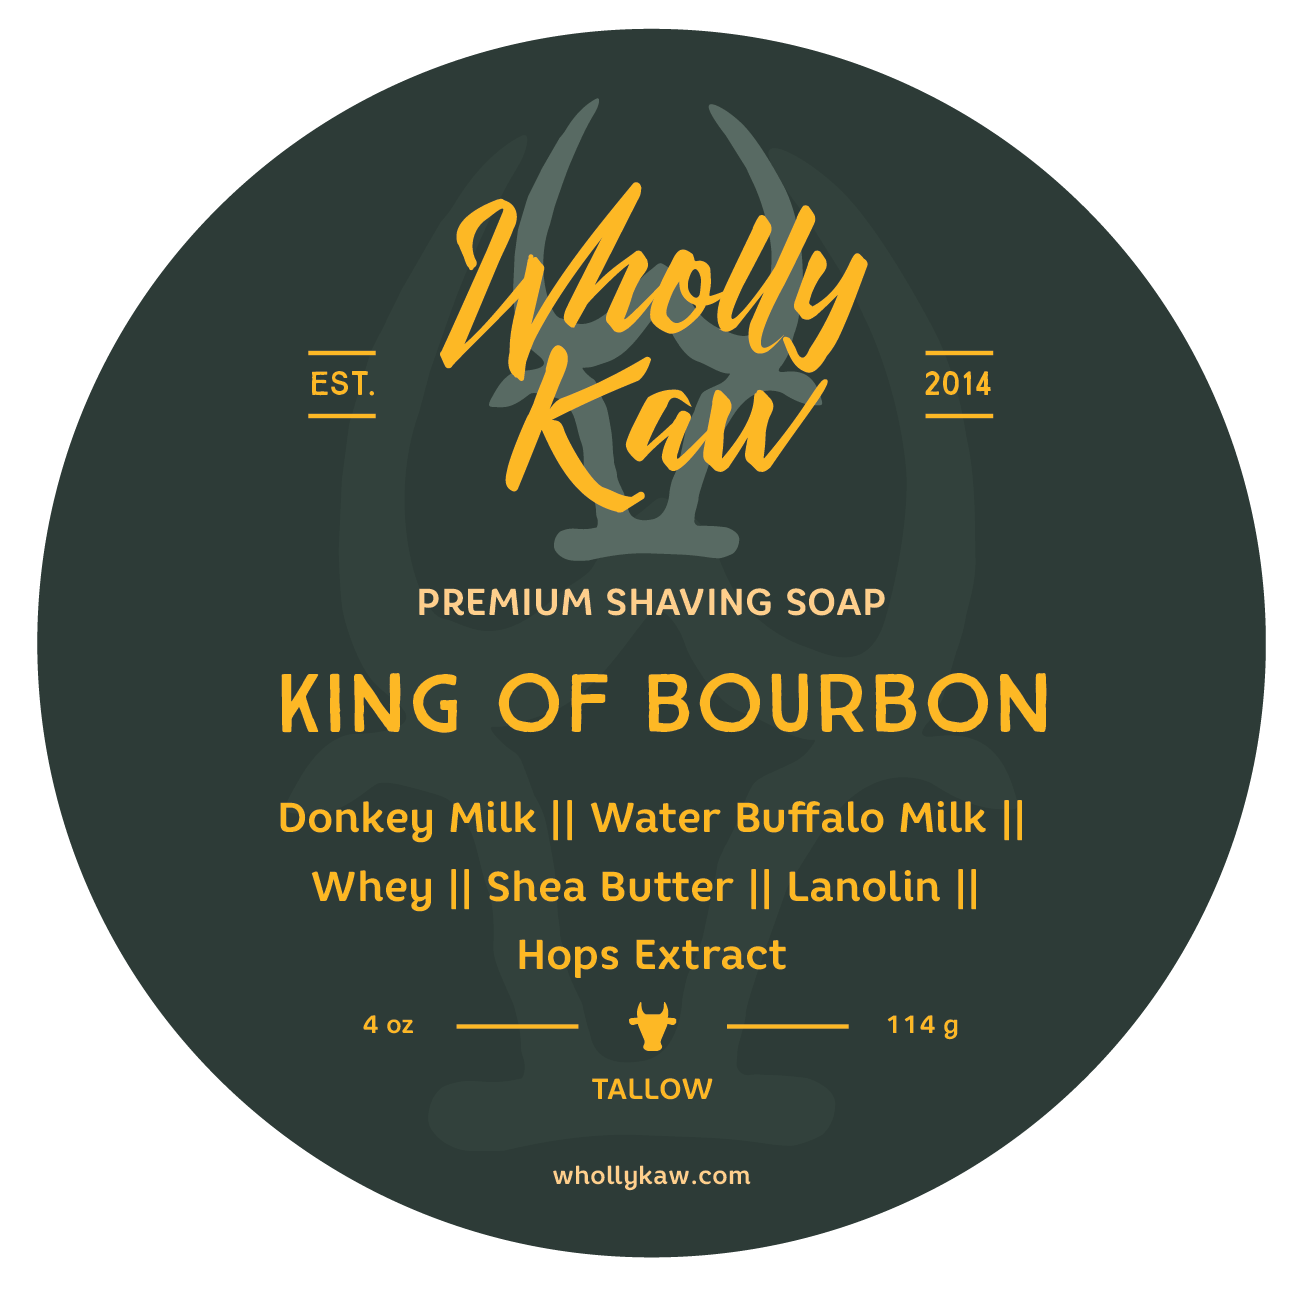 Wholly Kaw - King of Bourbon - Soap image